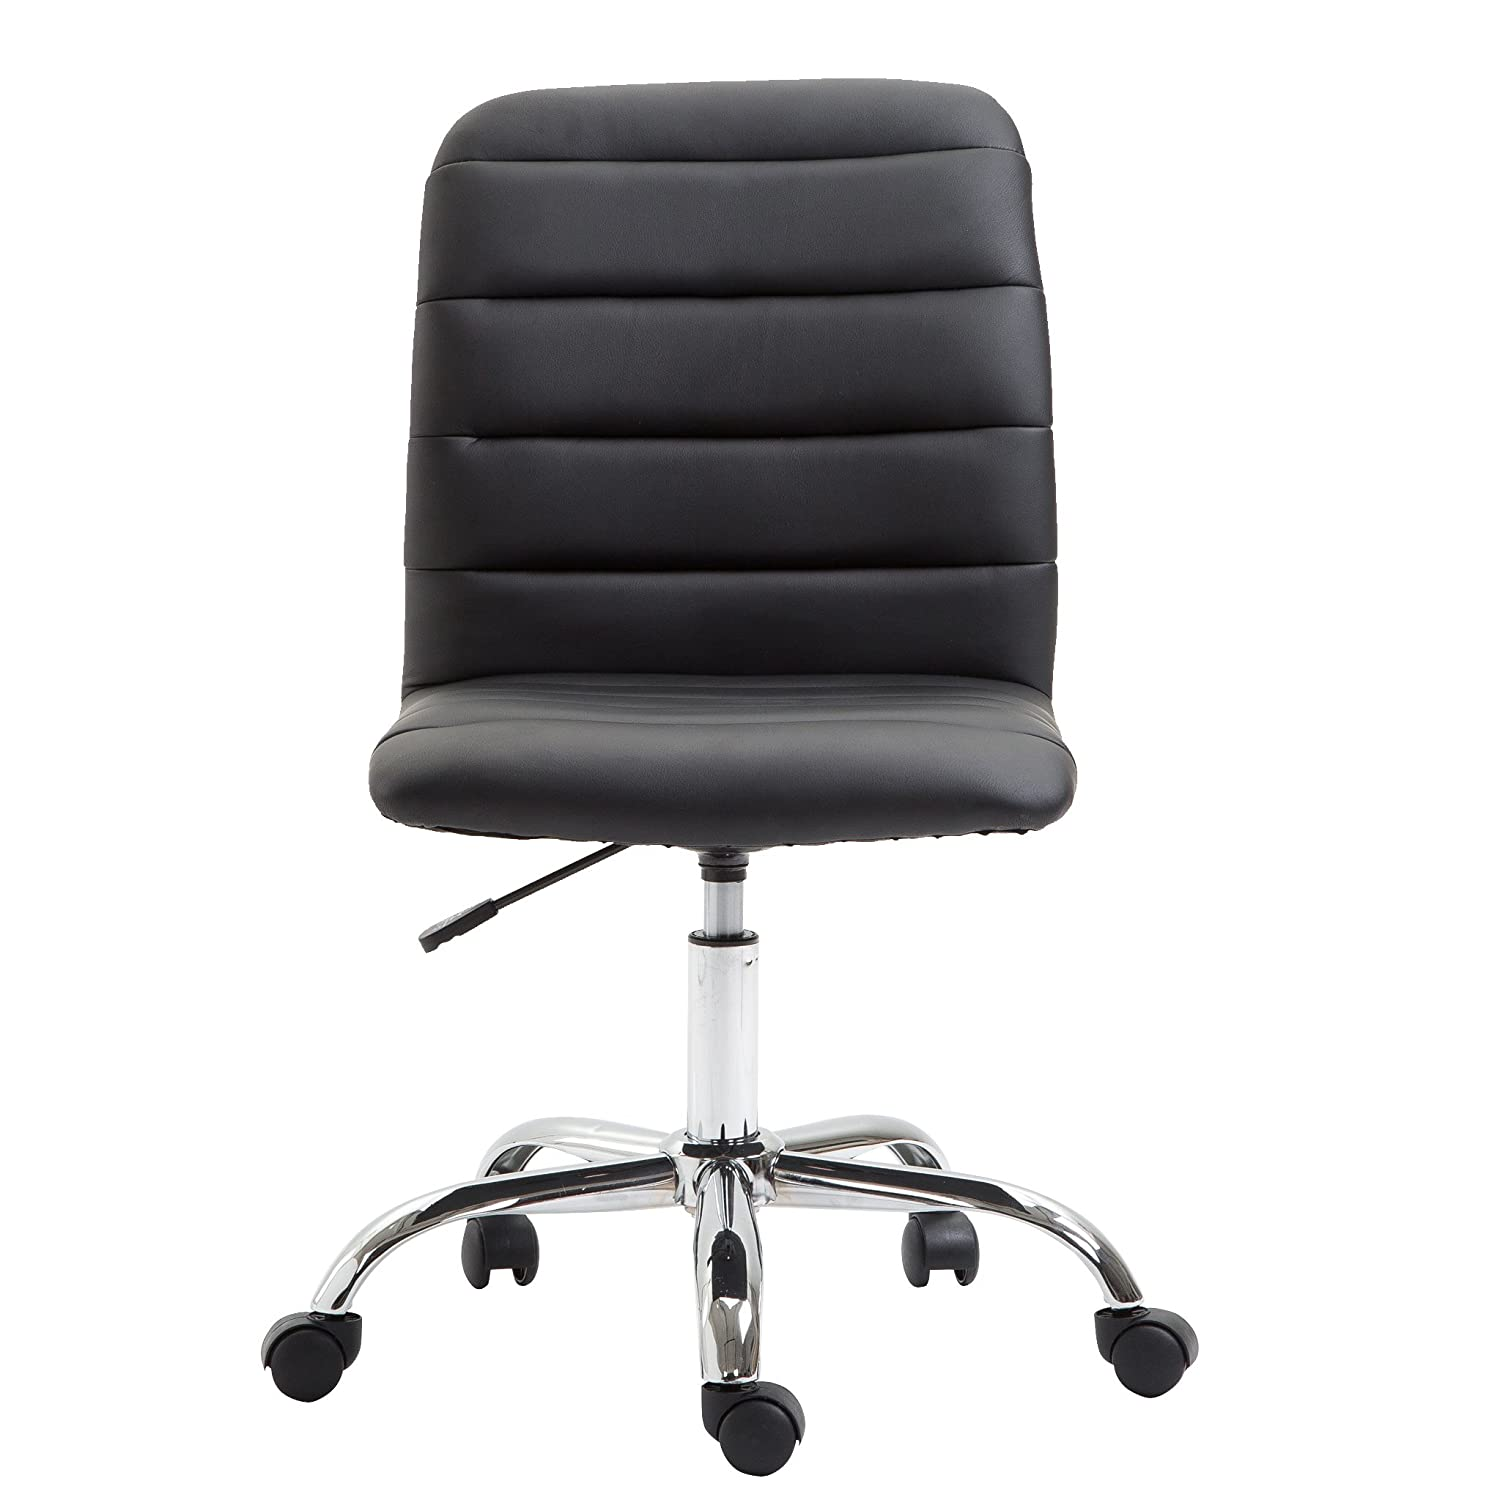 Poly and Bark Polox Task Chair in Vegan Leather, Black